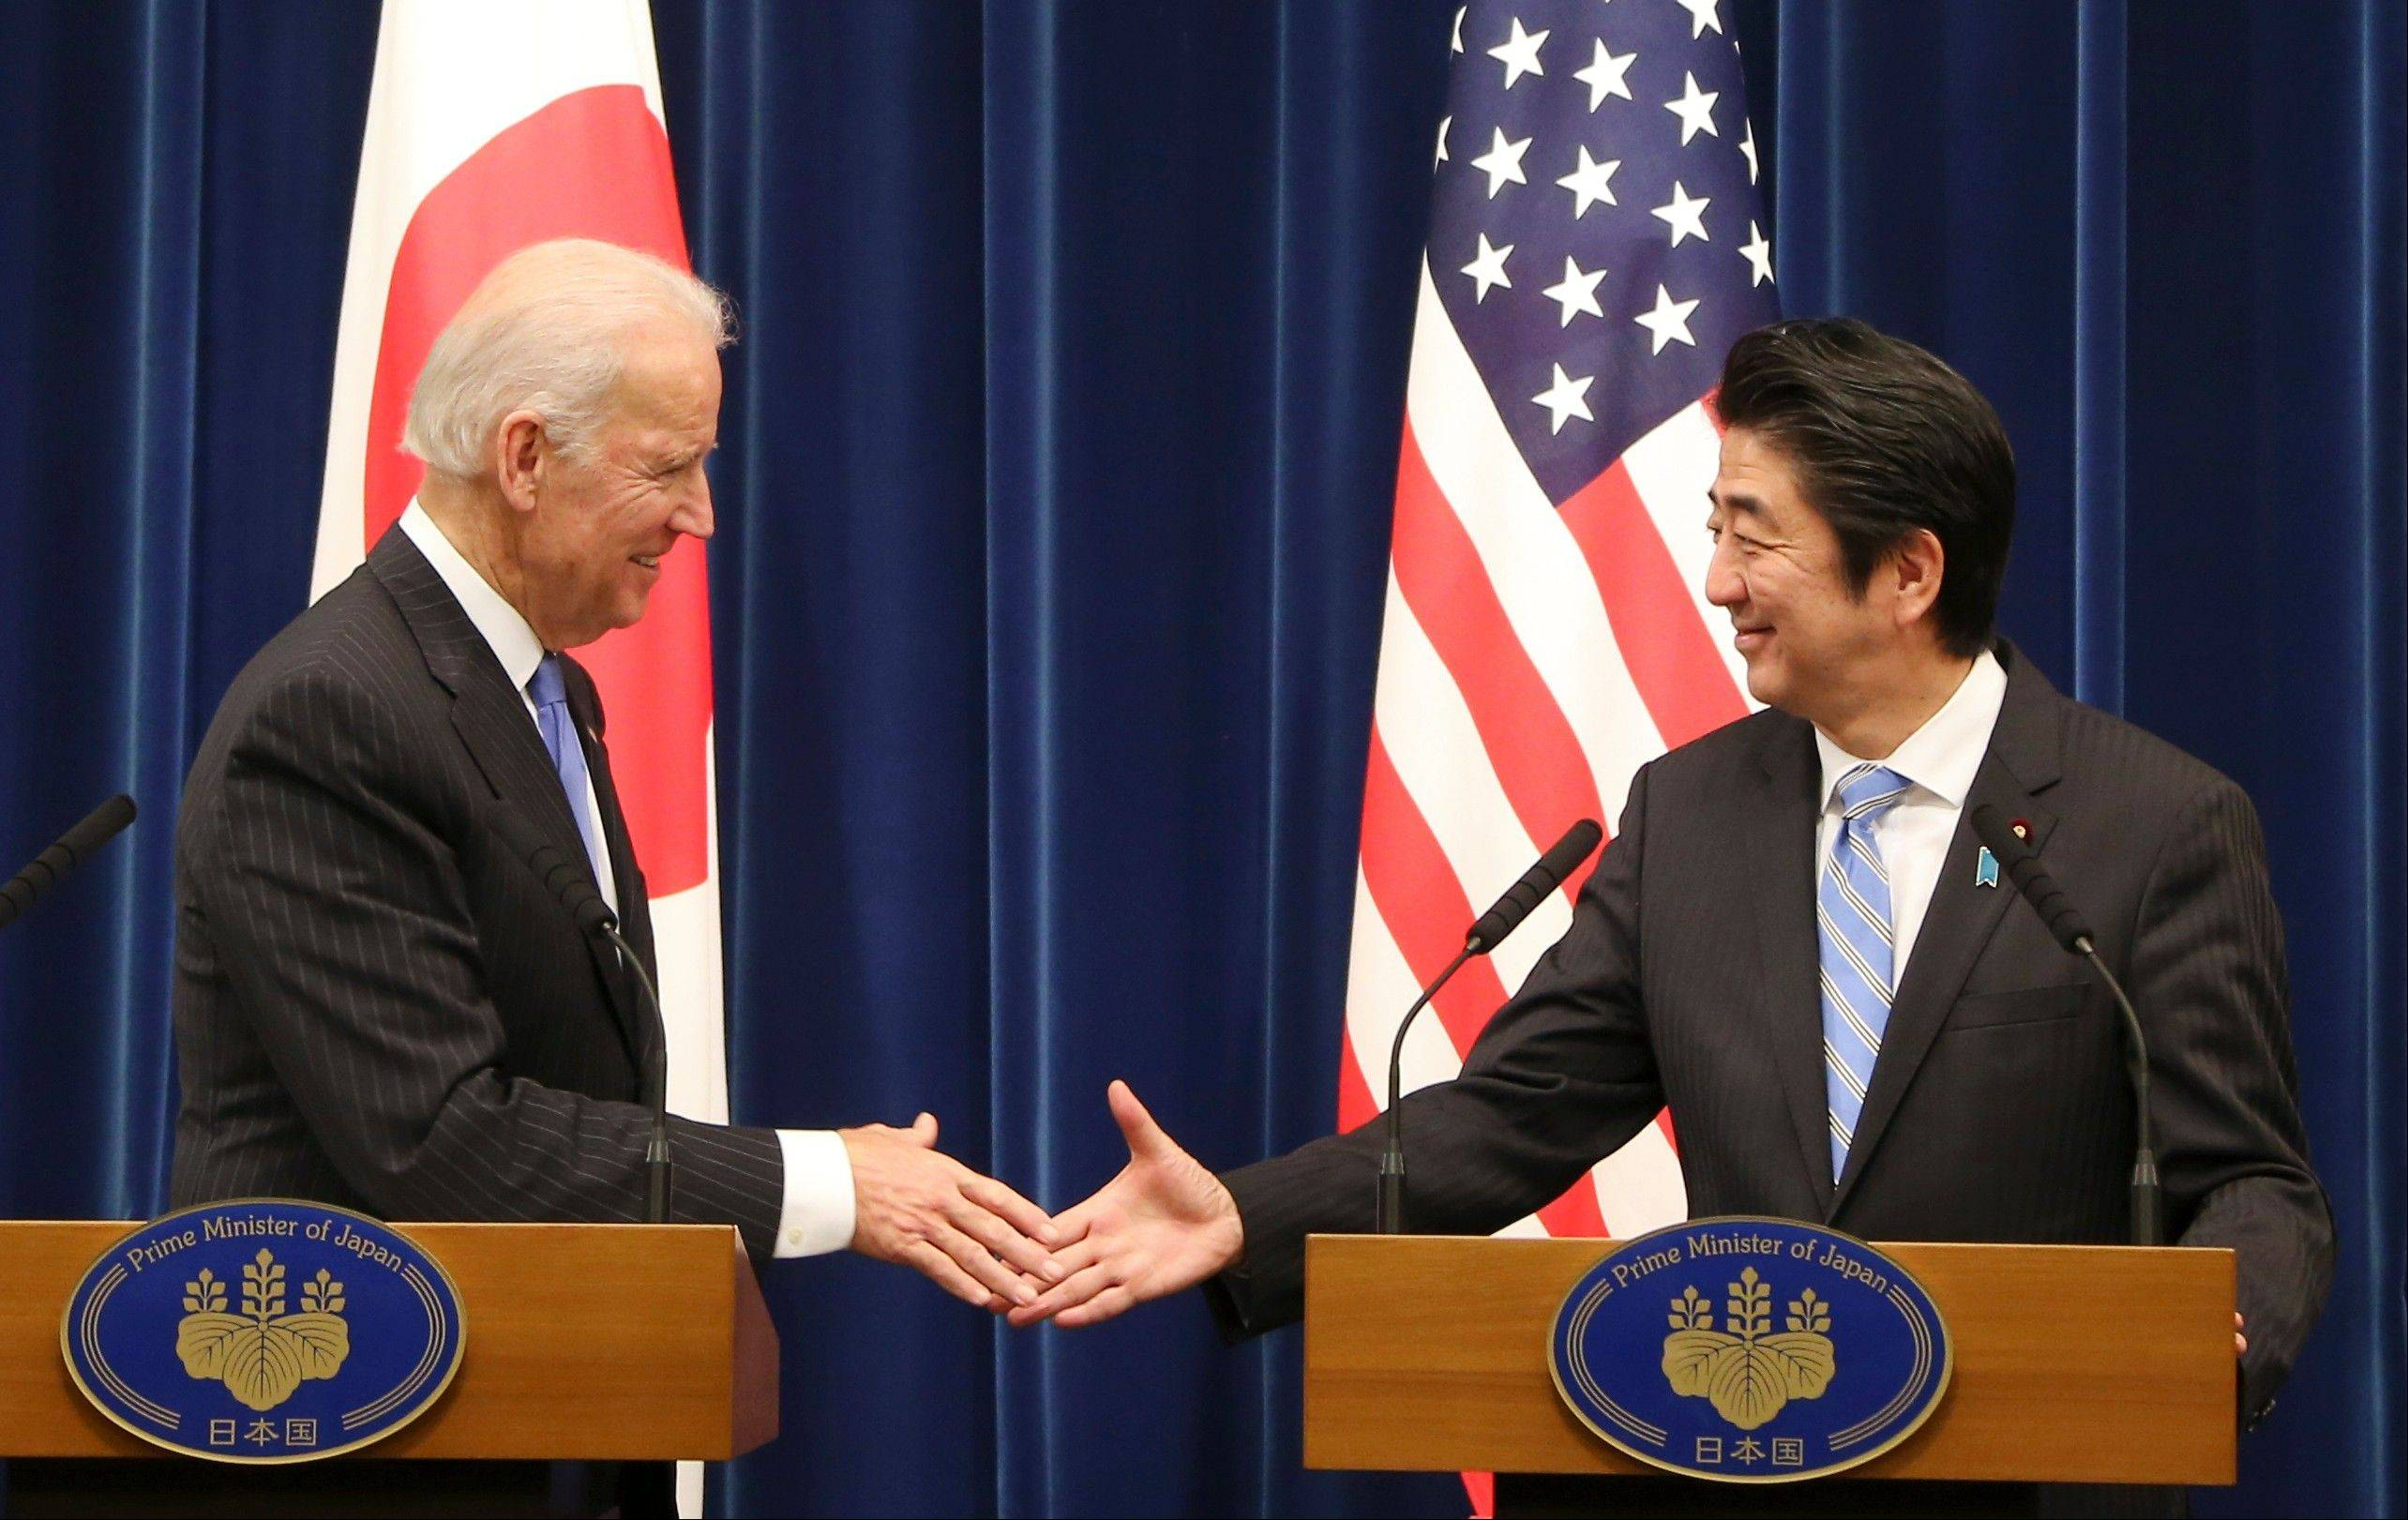 U.S. Vice President Joe Biden shakes hands with Japanese Prime Minister Shinzo Abe at the end of a joint press conference following their meeting at Abe�s official residence in Tokyo Tuesday. Biden voiced strong opposition Tuesday to China�s new air defense zone above a set of disputed islands, showing a united front with an anxious Japan as tension in the region simmered.